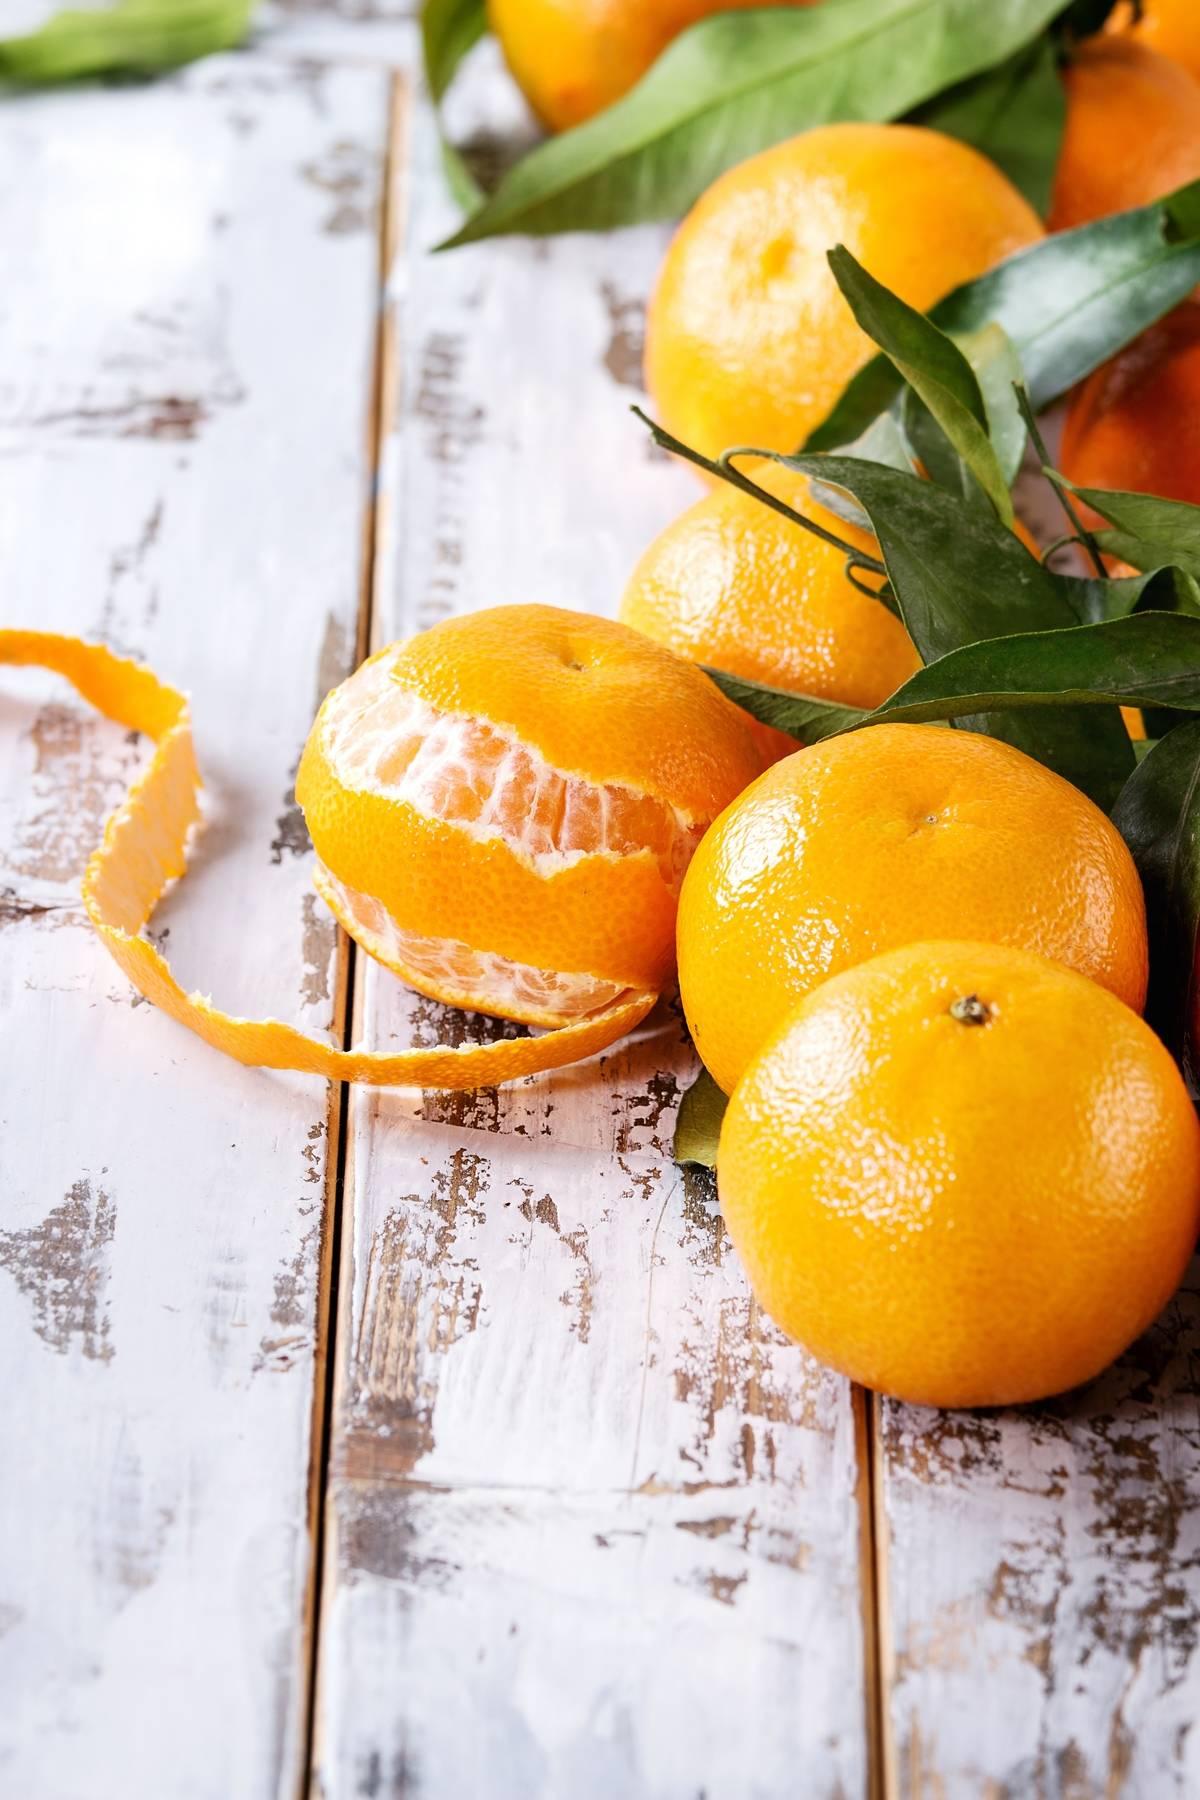 Citrus Is Going To Take Over For Sugar-Laced Products